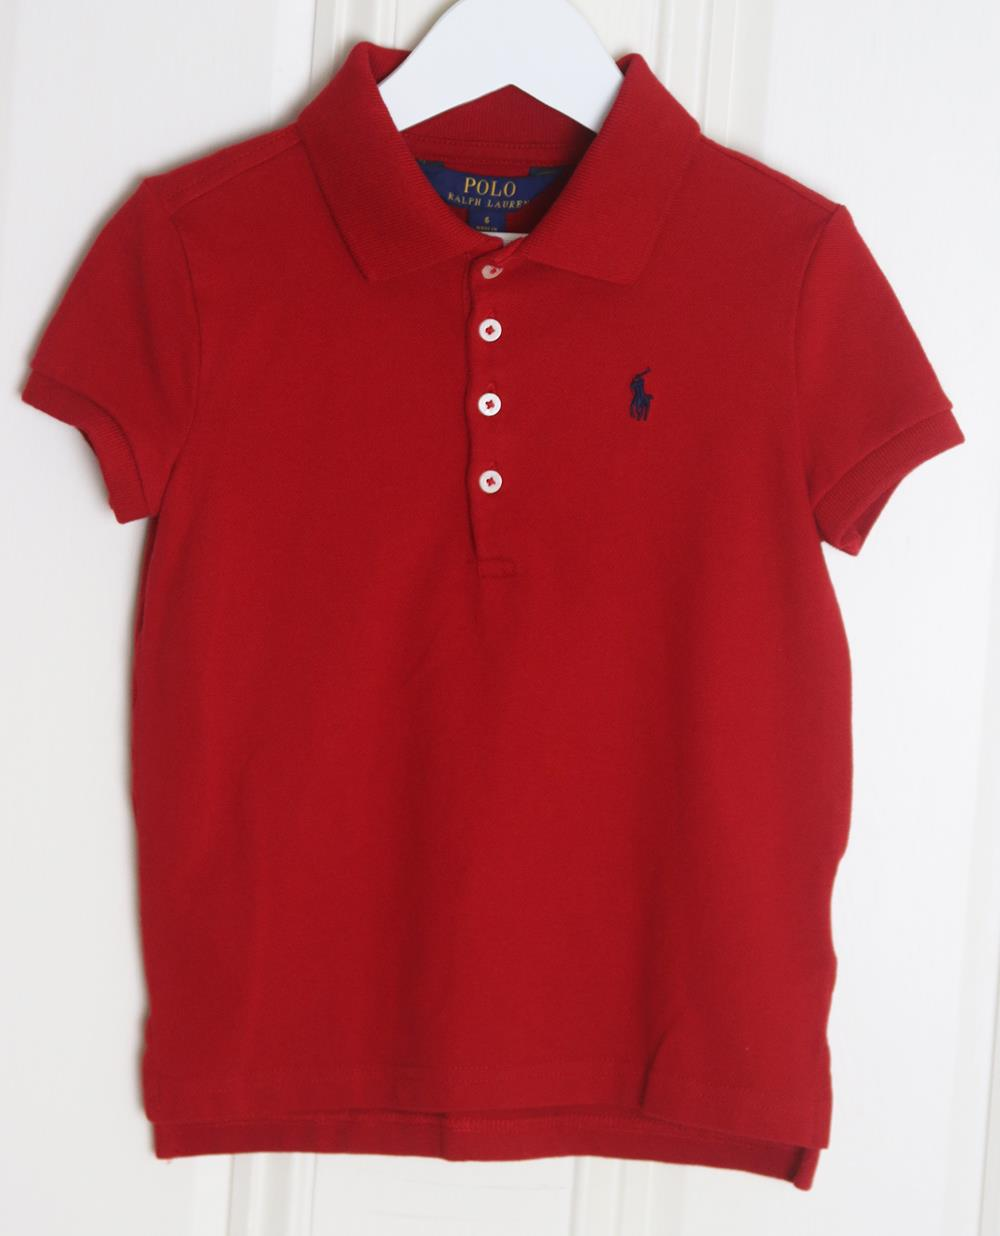 POLO RALPH LAUREN KIDS UNISEX COTTON POLO SHIRT 6 YEARS